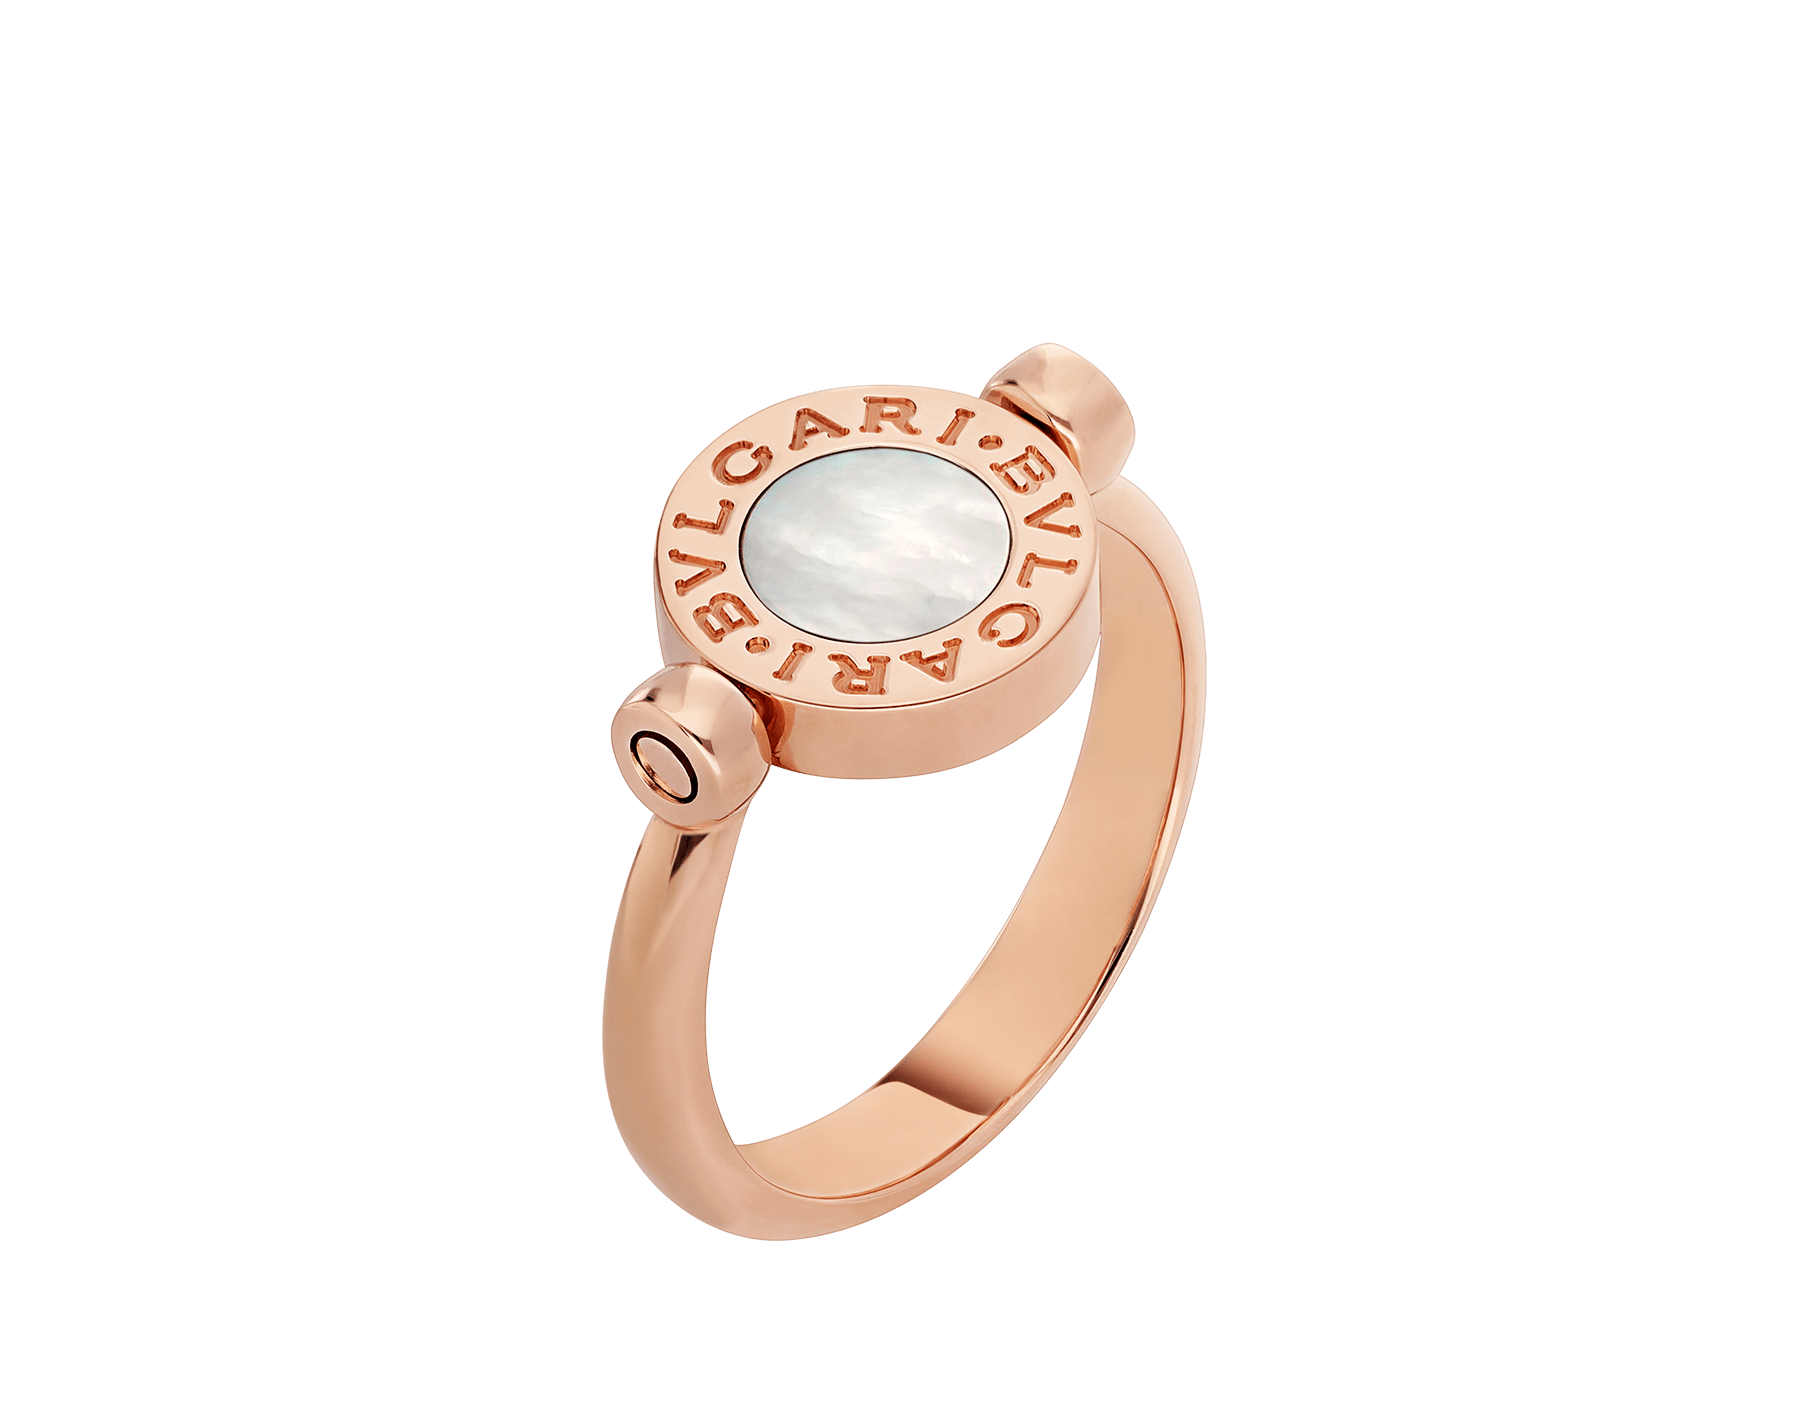 BVLGARI BVLGARI 18 kt rose gold flip ring set with mother-of-pearl and carnelian elements AN858197 image 3